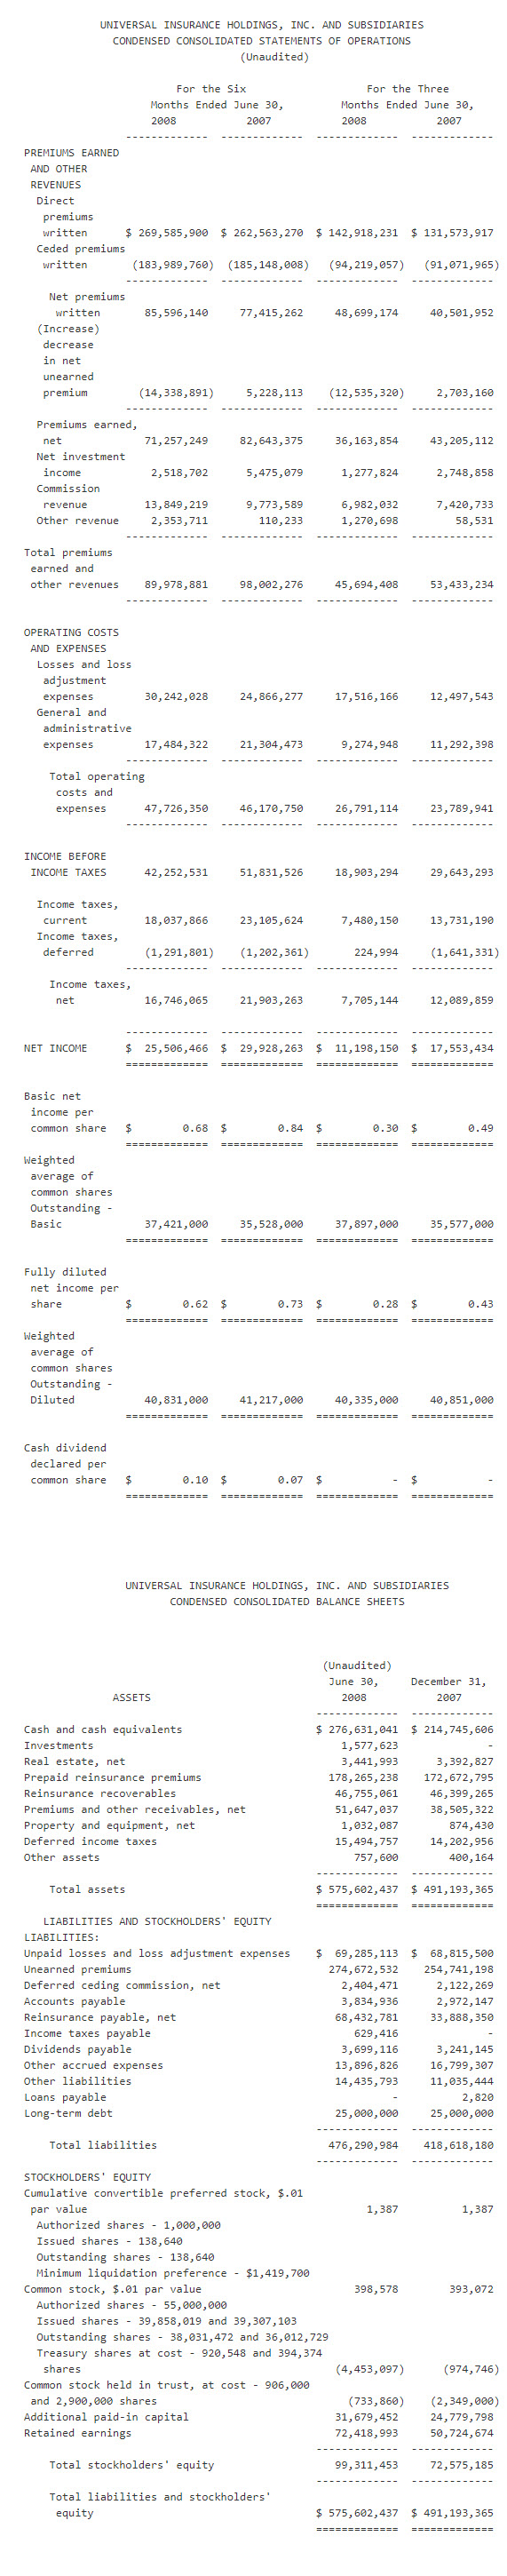 second quarter and first half 2008 financial results